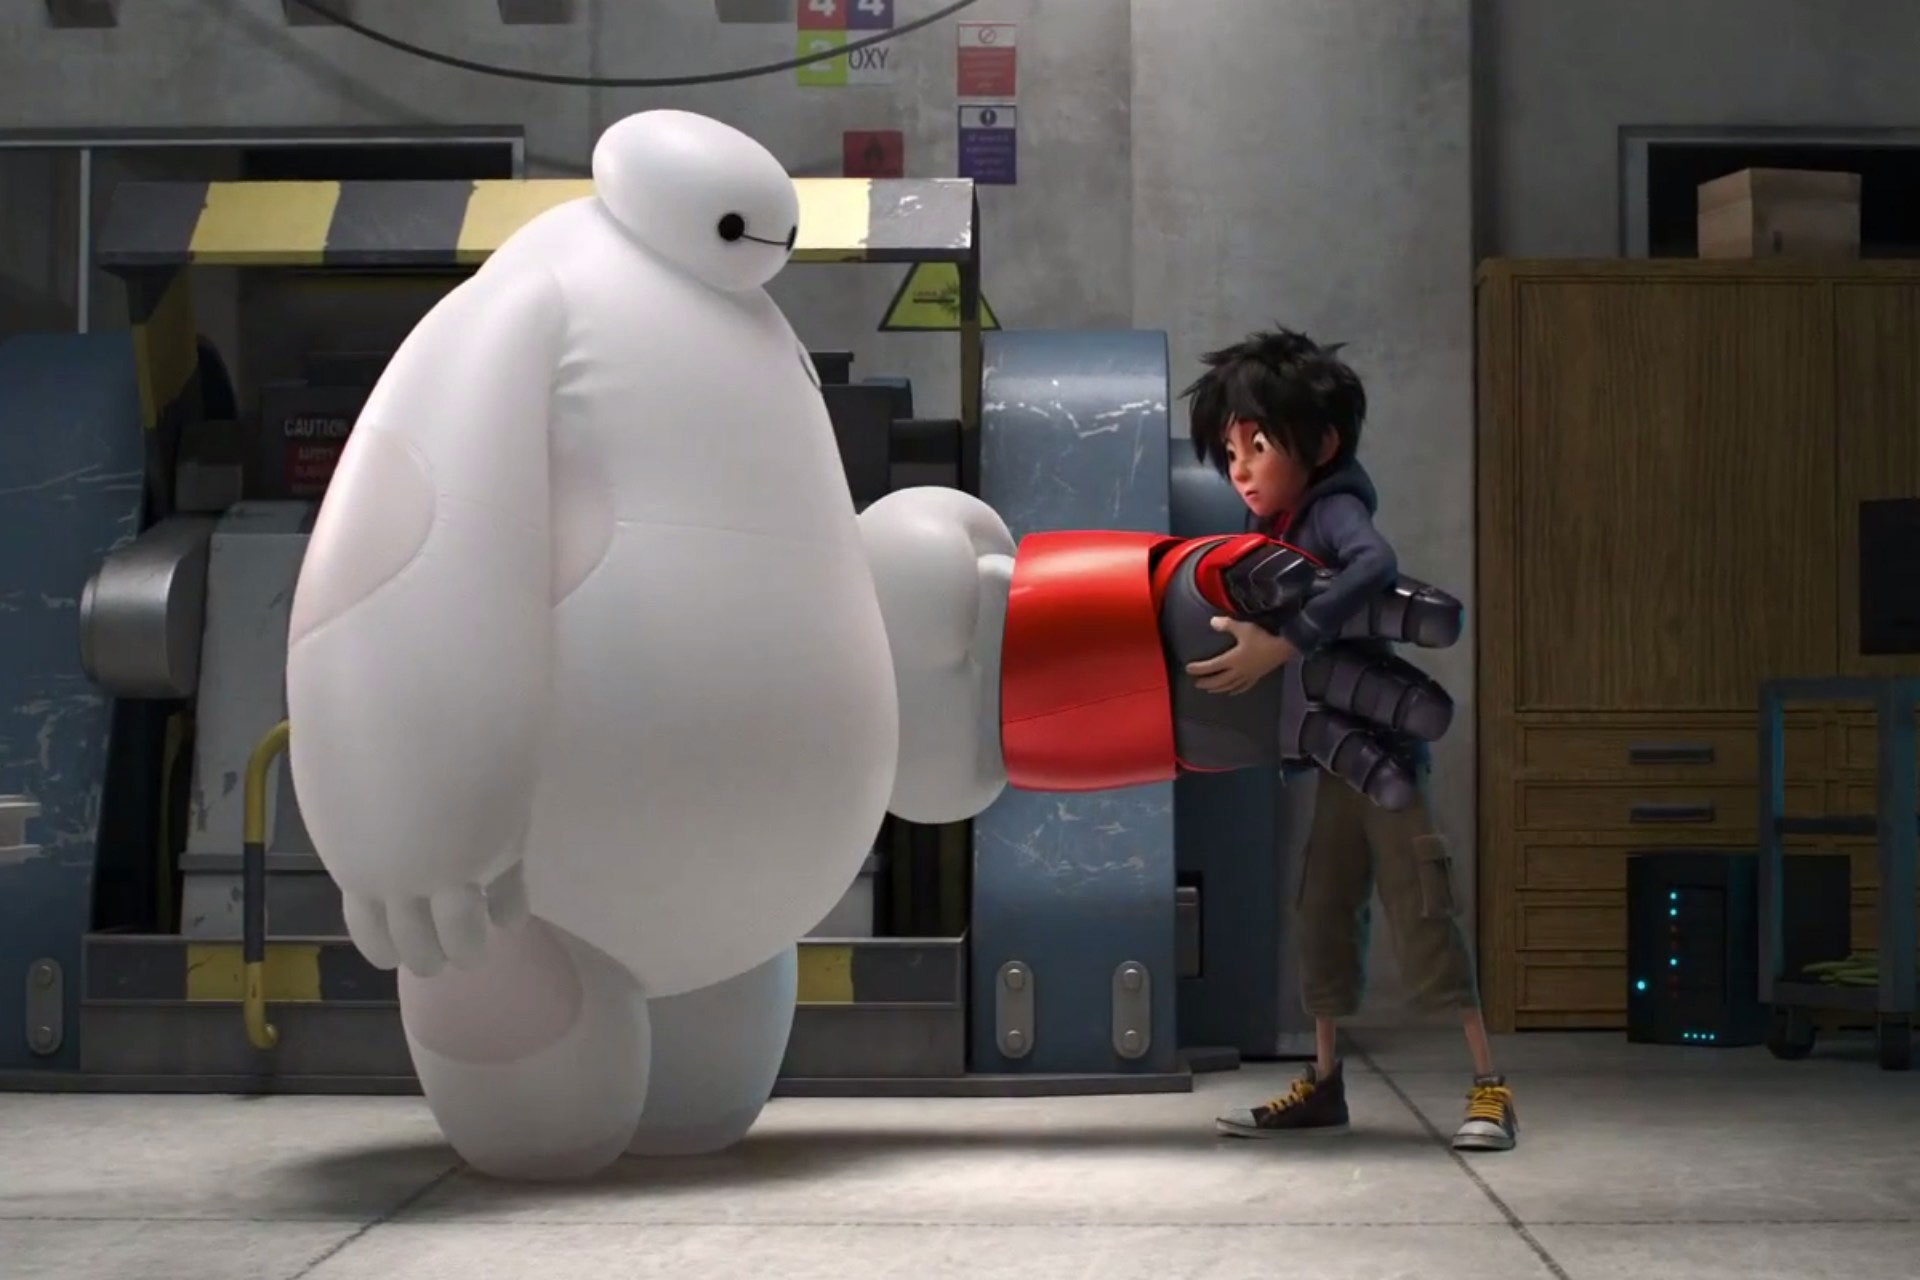 Expect more comedy from your superheroes in Disney's Big Hero 6.